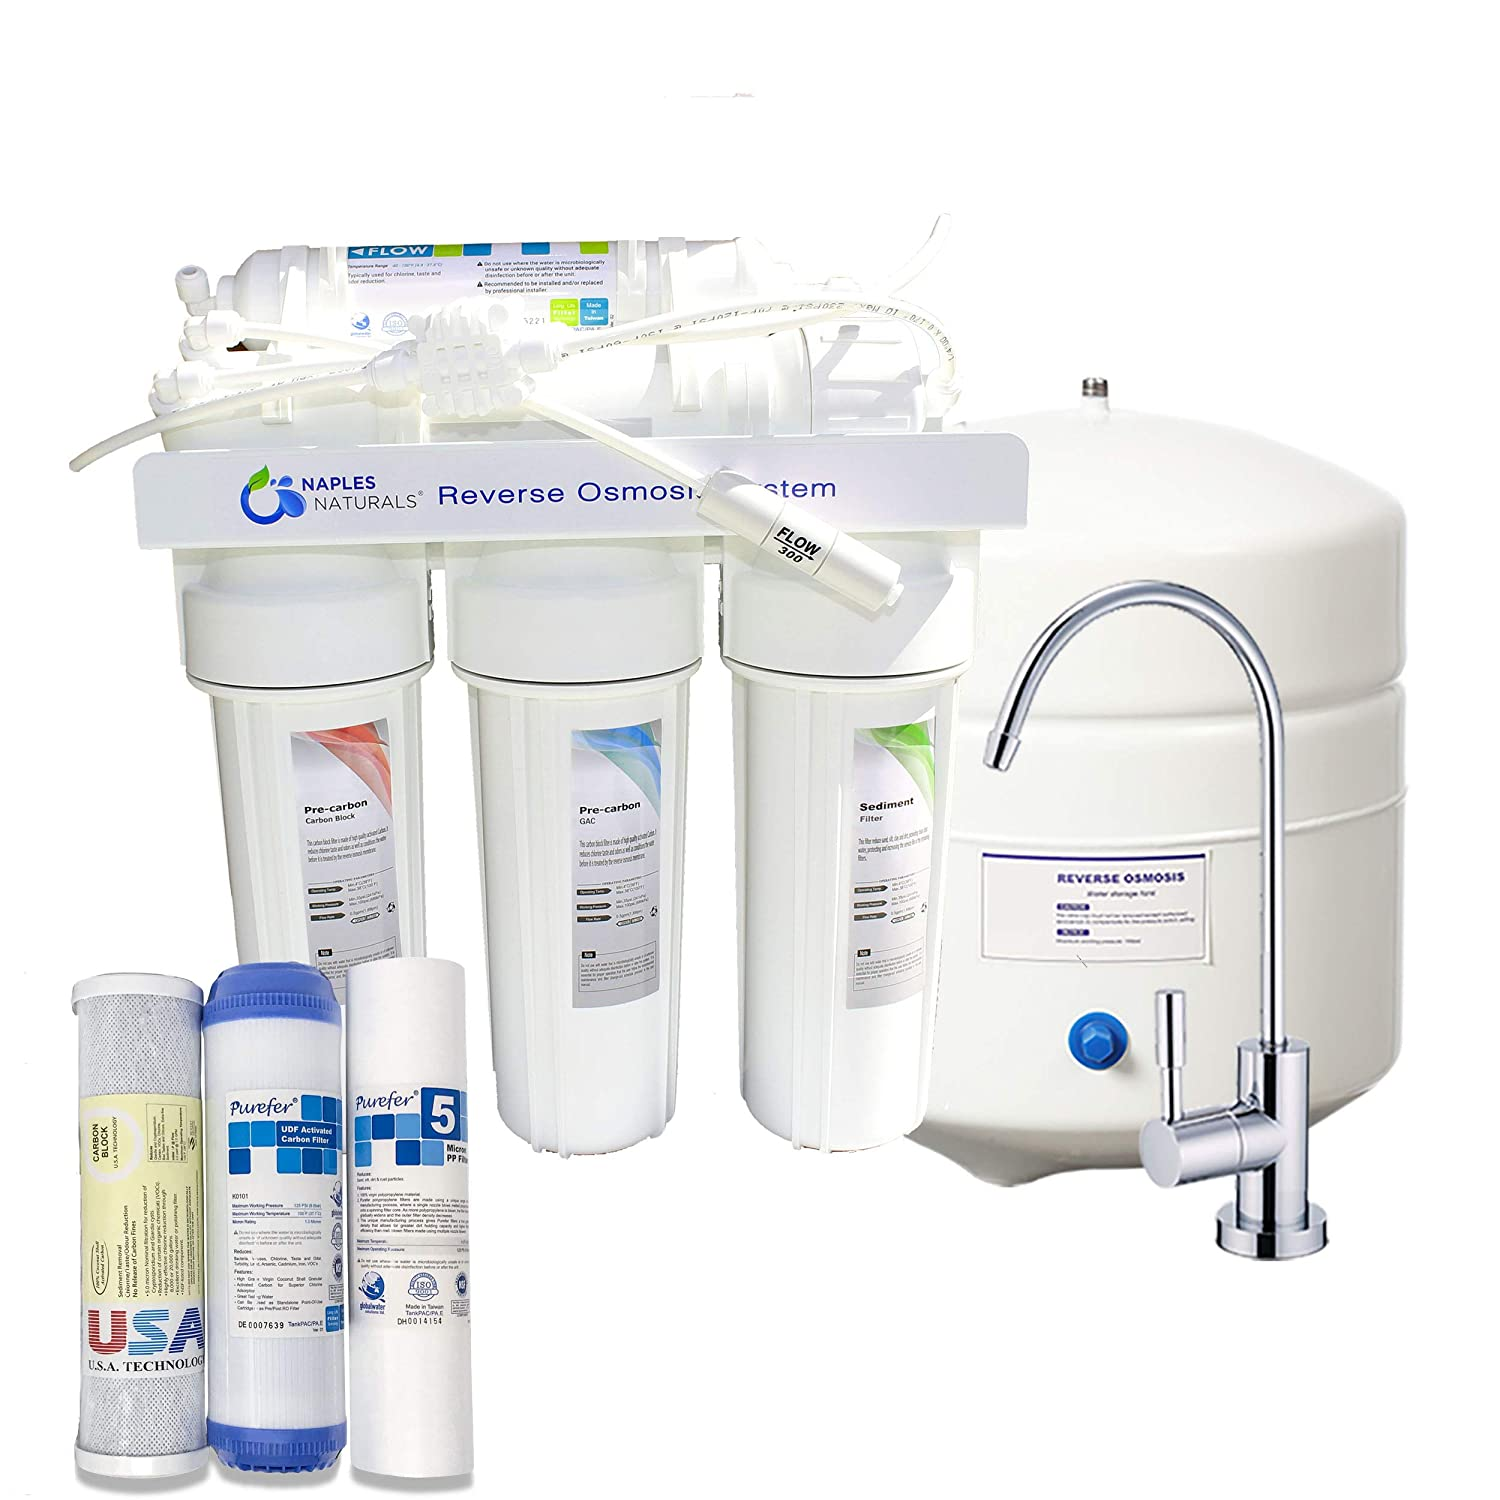 Naples Naturals RO58 Reverse Osmosis Water Filter System (5-Stage) with Extra Replacement Filters